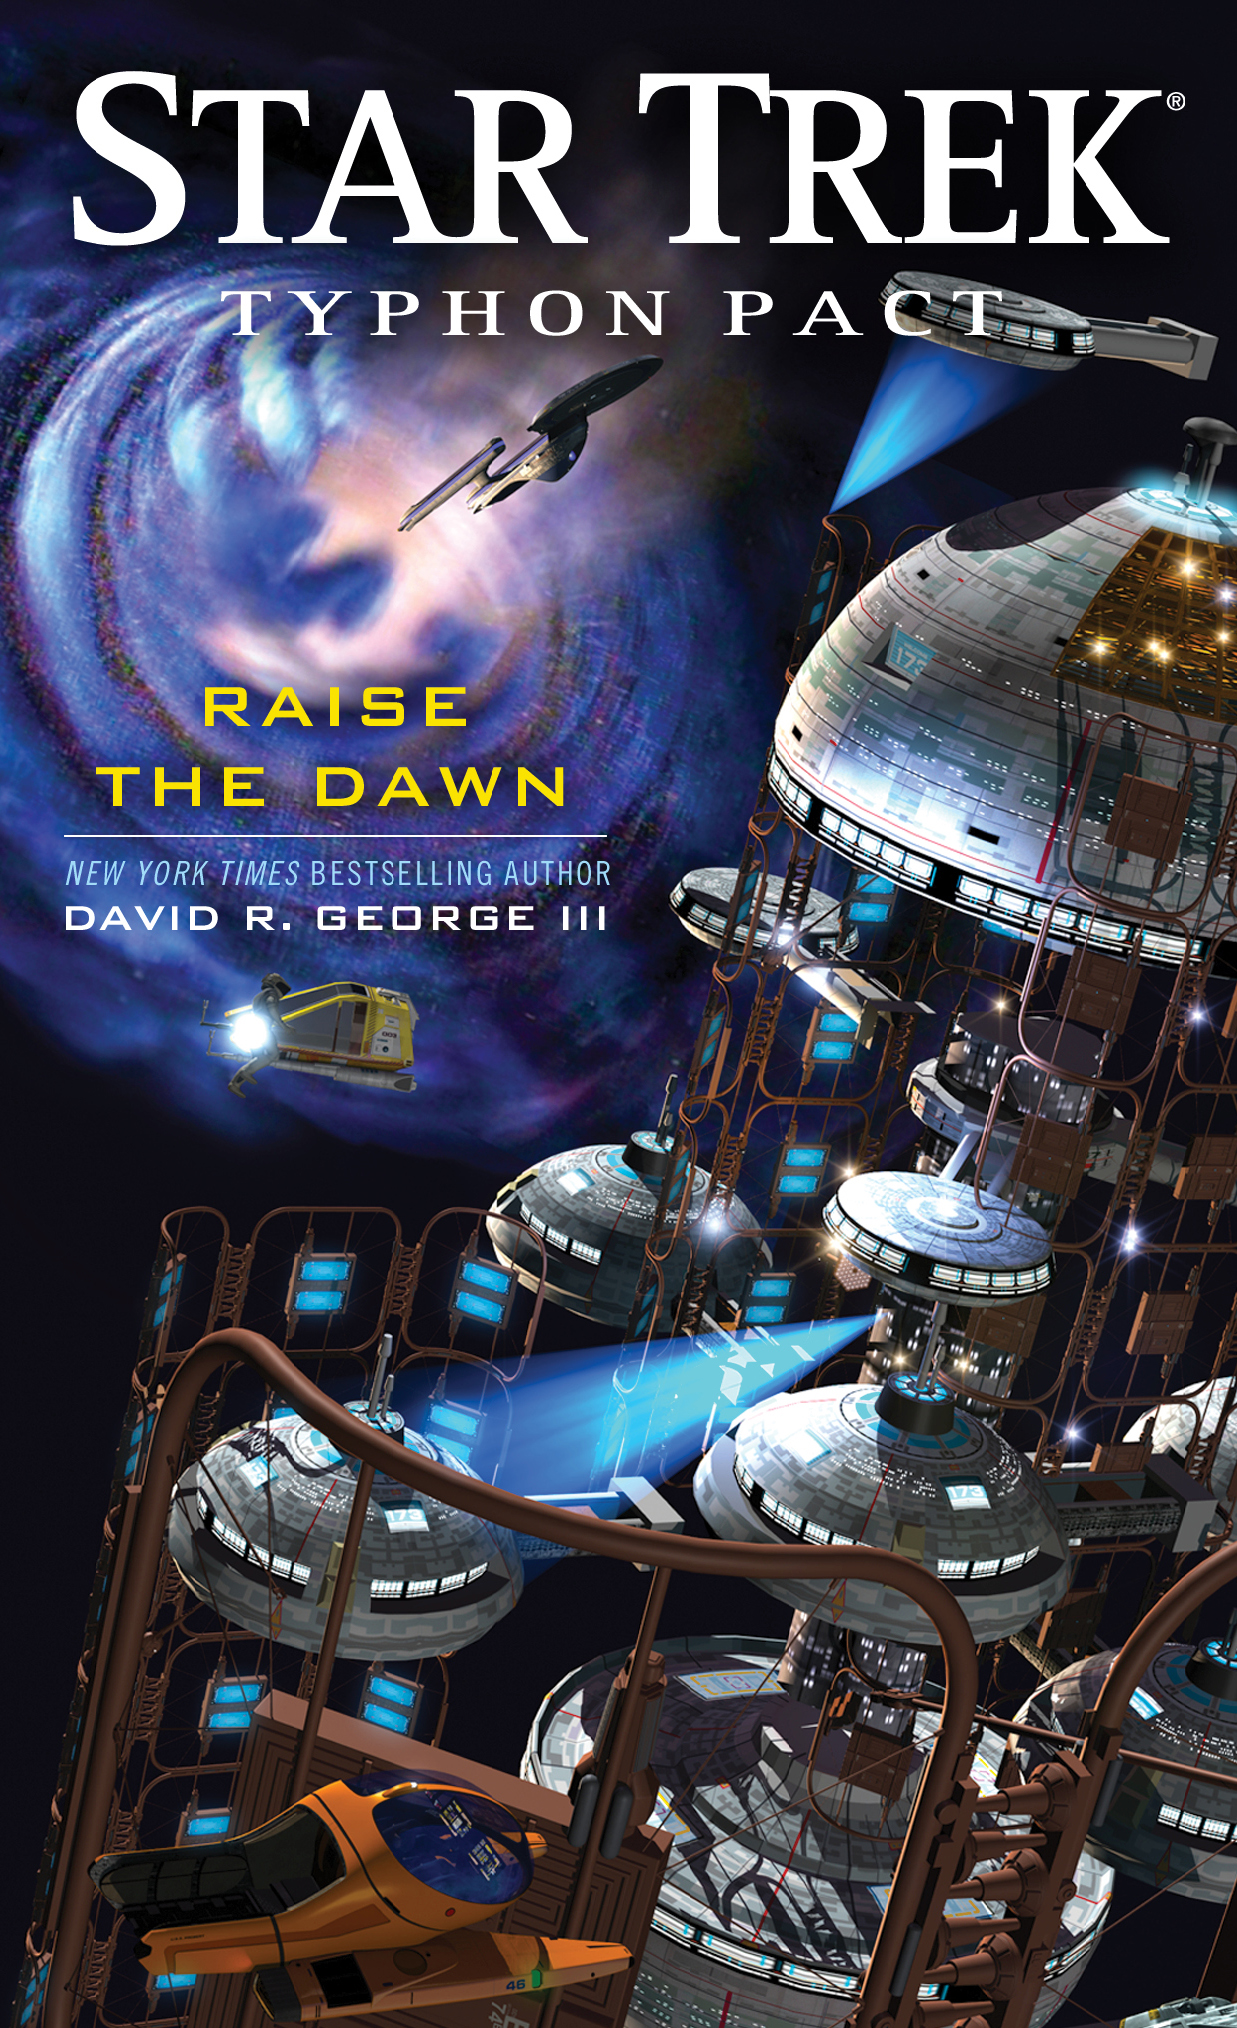 Raise the dawn memory beta non canon star trek wiki fandom raise the dawn fandeluxe Document